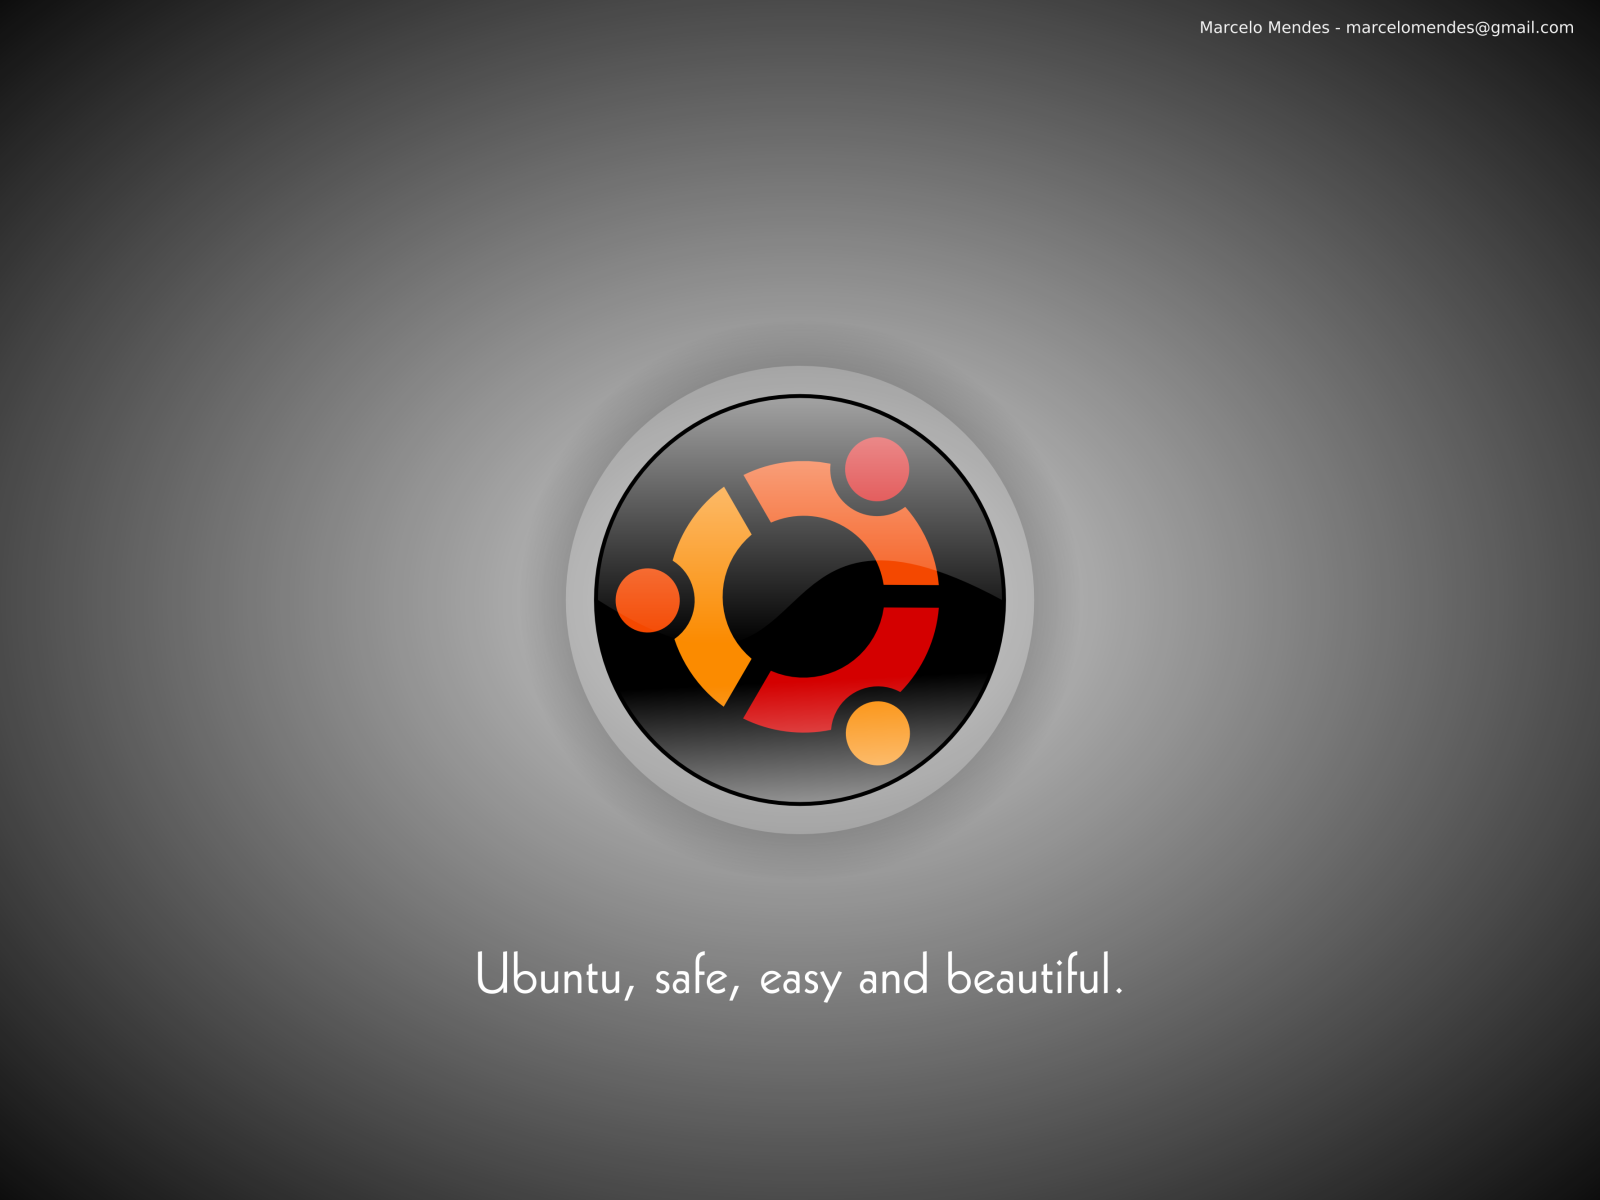 ubuntu wallpaper easy 250x250 Wallpapers Ubuntu 1600x1200